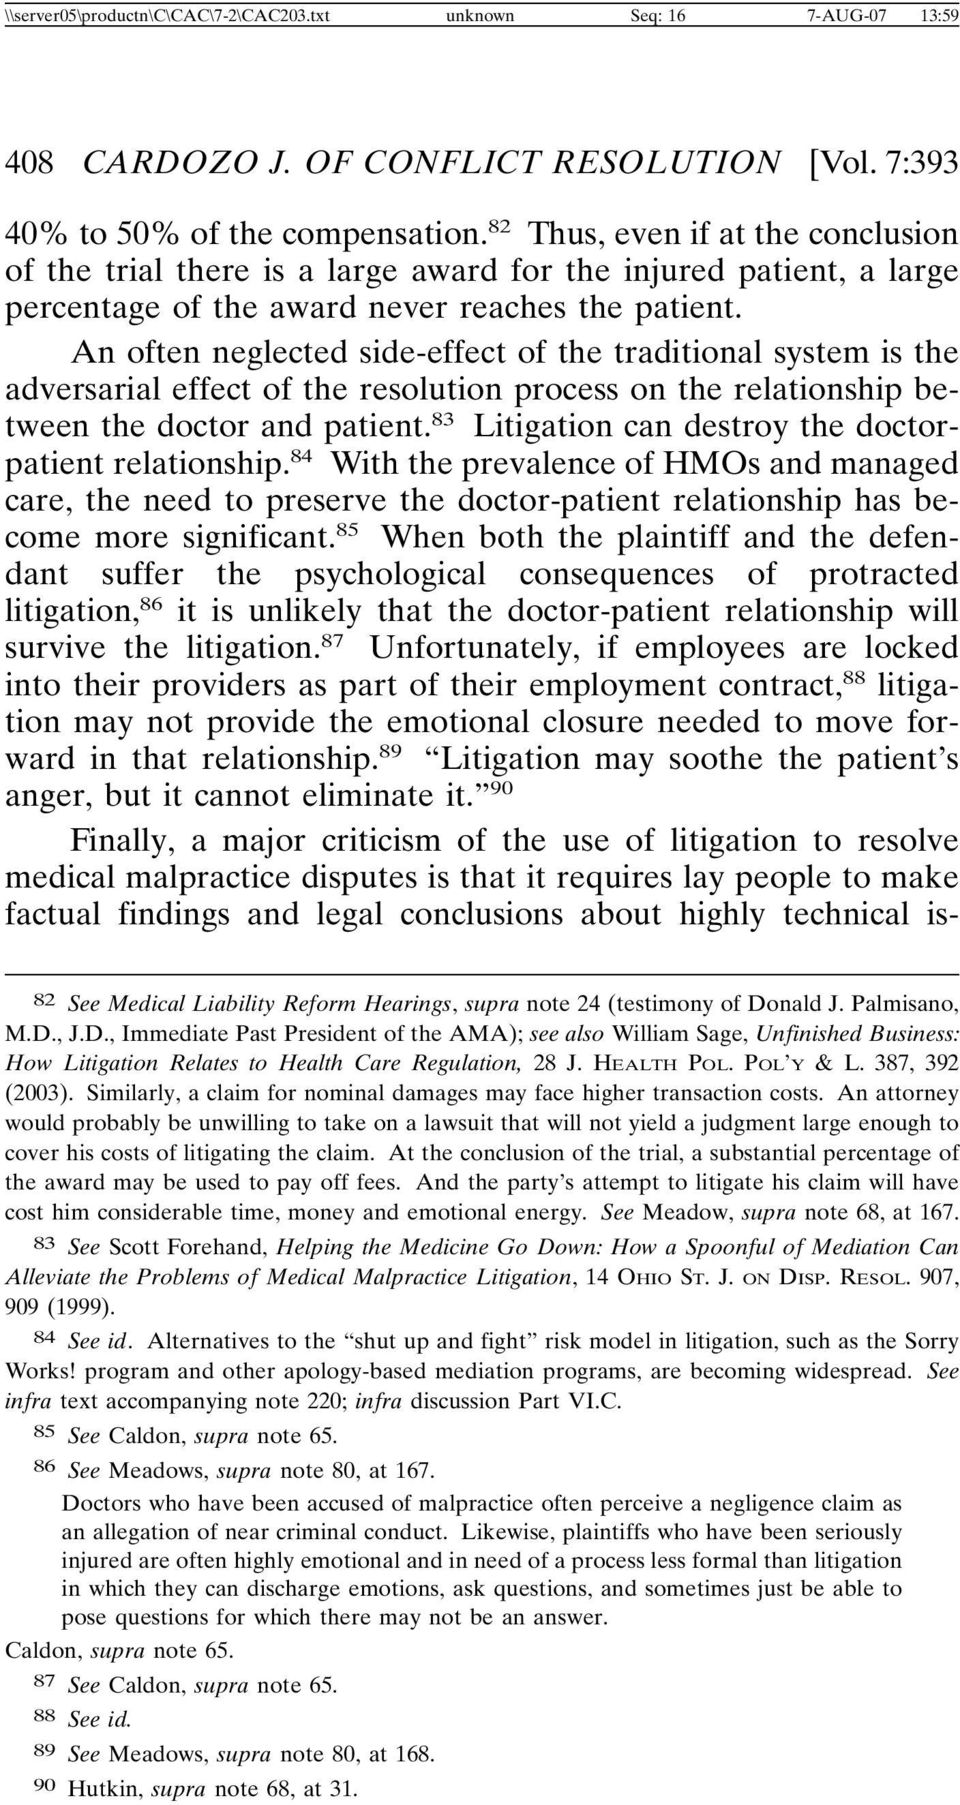 An often neglected side-effect of the traditional system is the adversarial effect of the resolution process on the relationship between the doctor and patient.